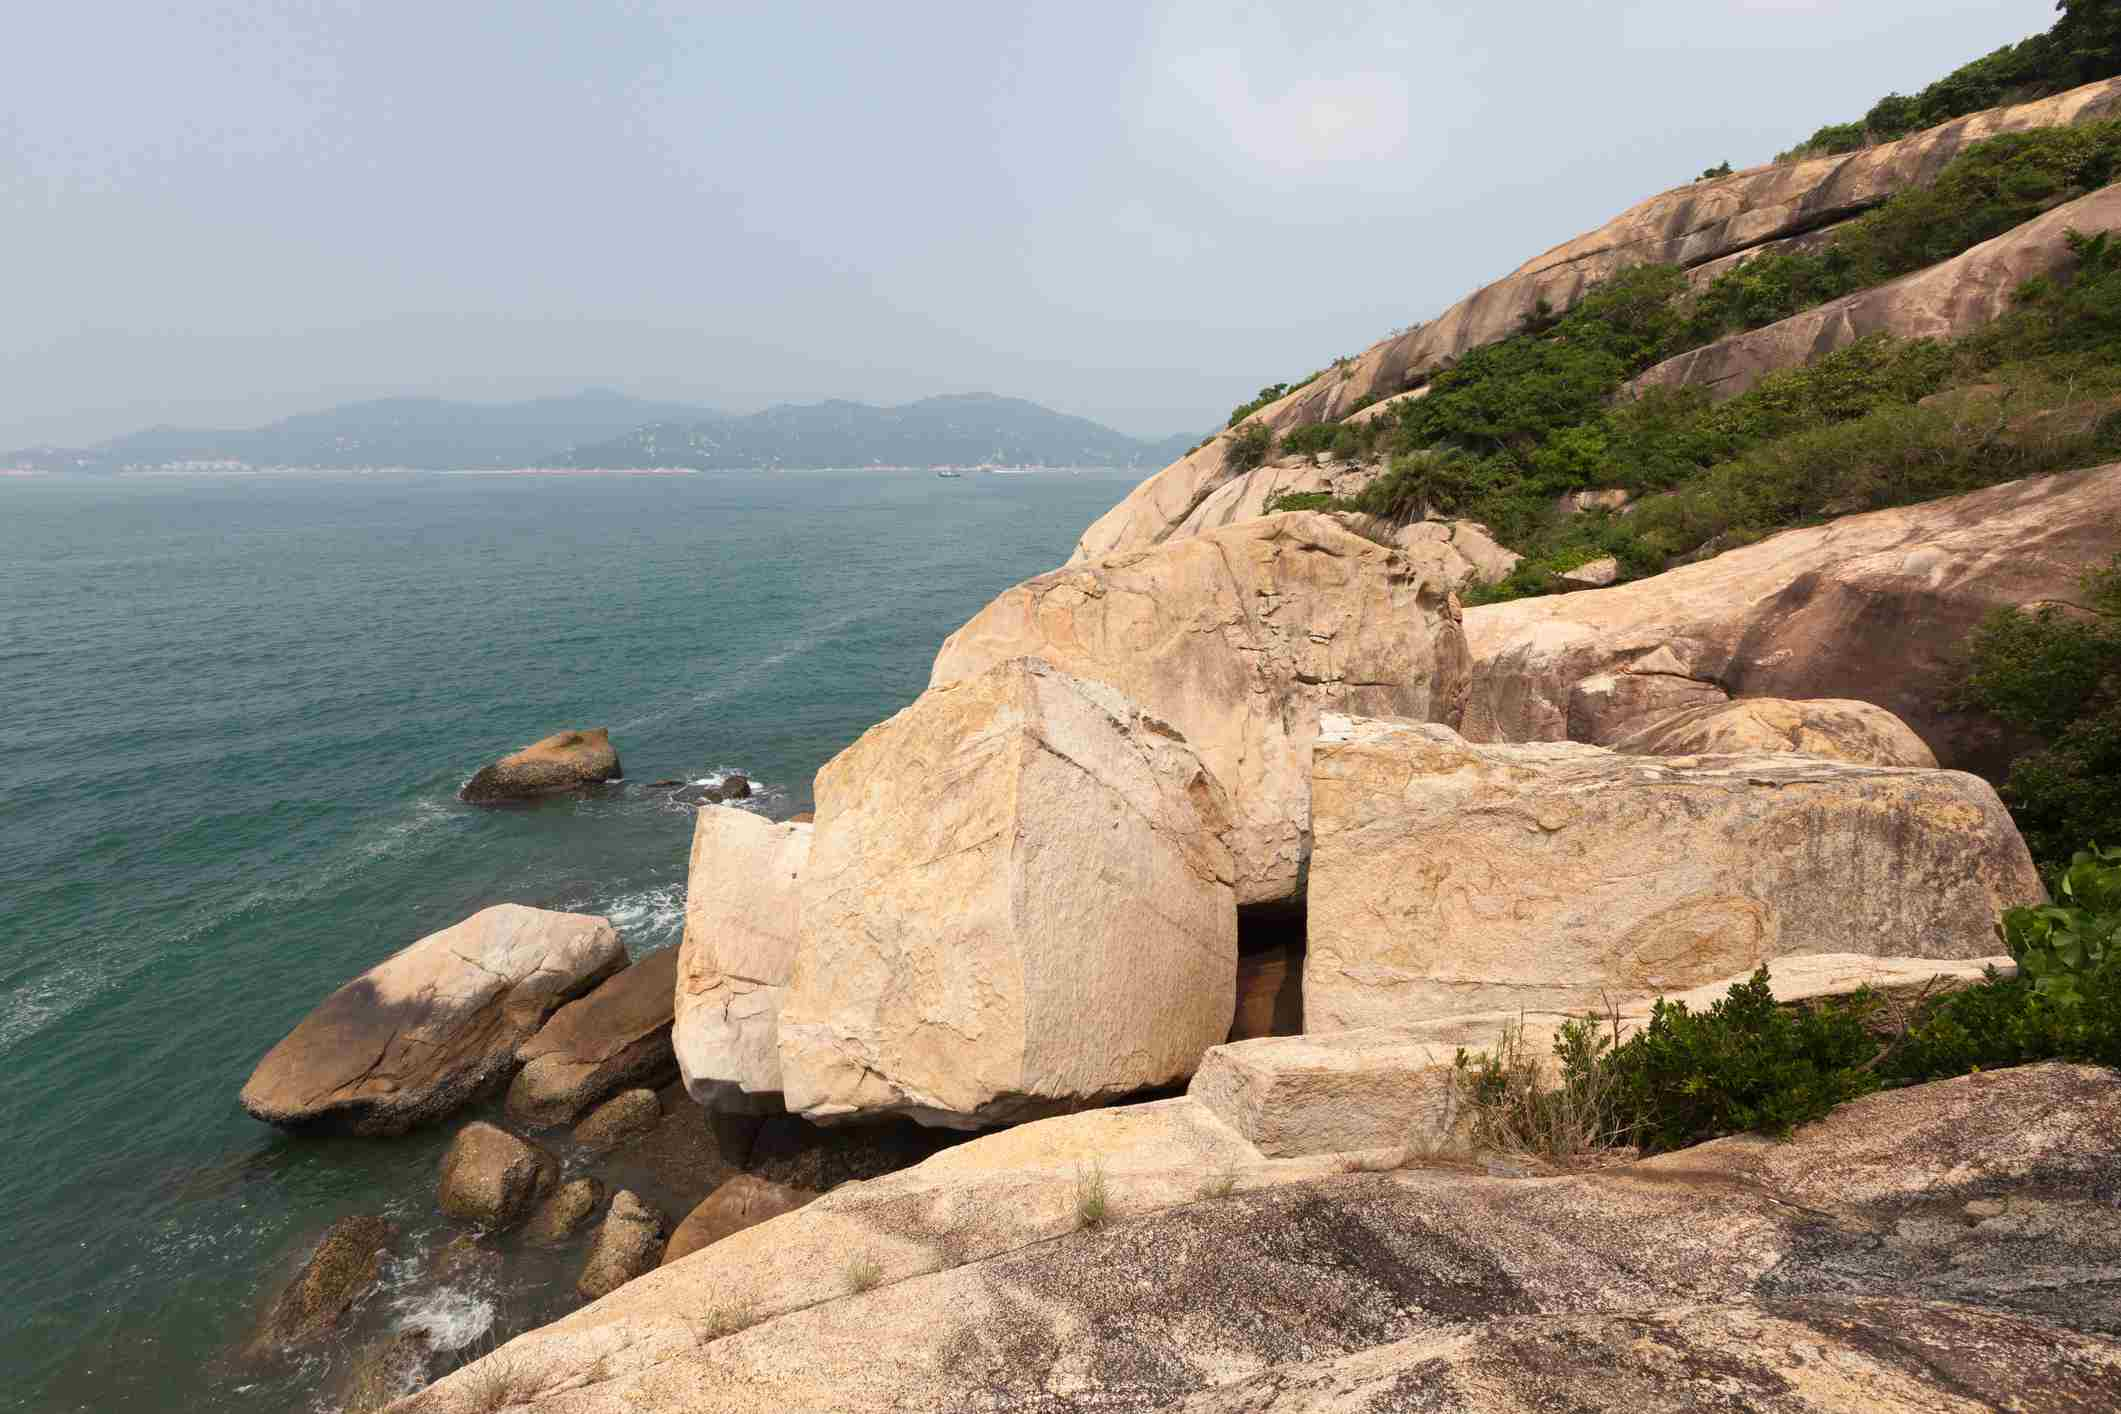 The Reclining Rock, A Rock Formation On The Island Of Cheung Chau, Outlying Islands